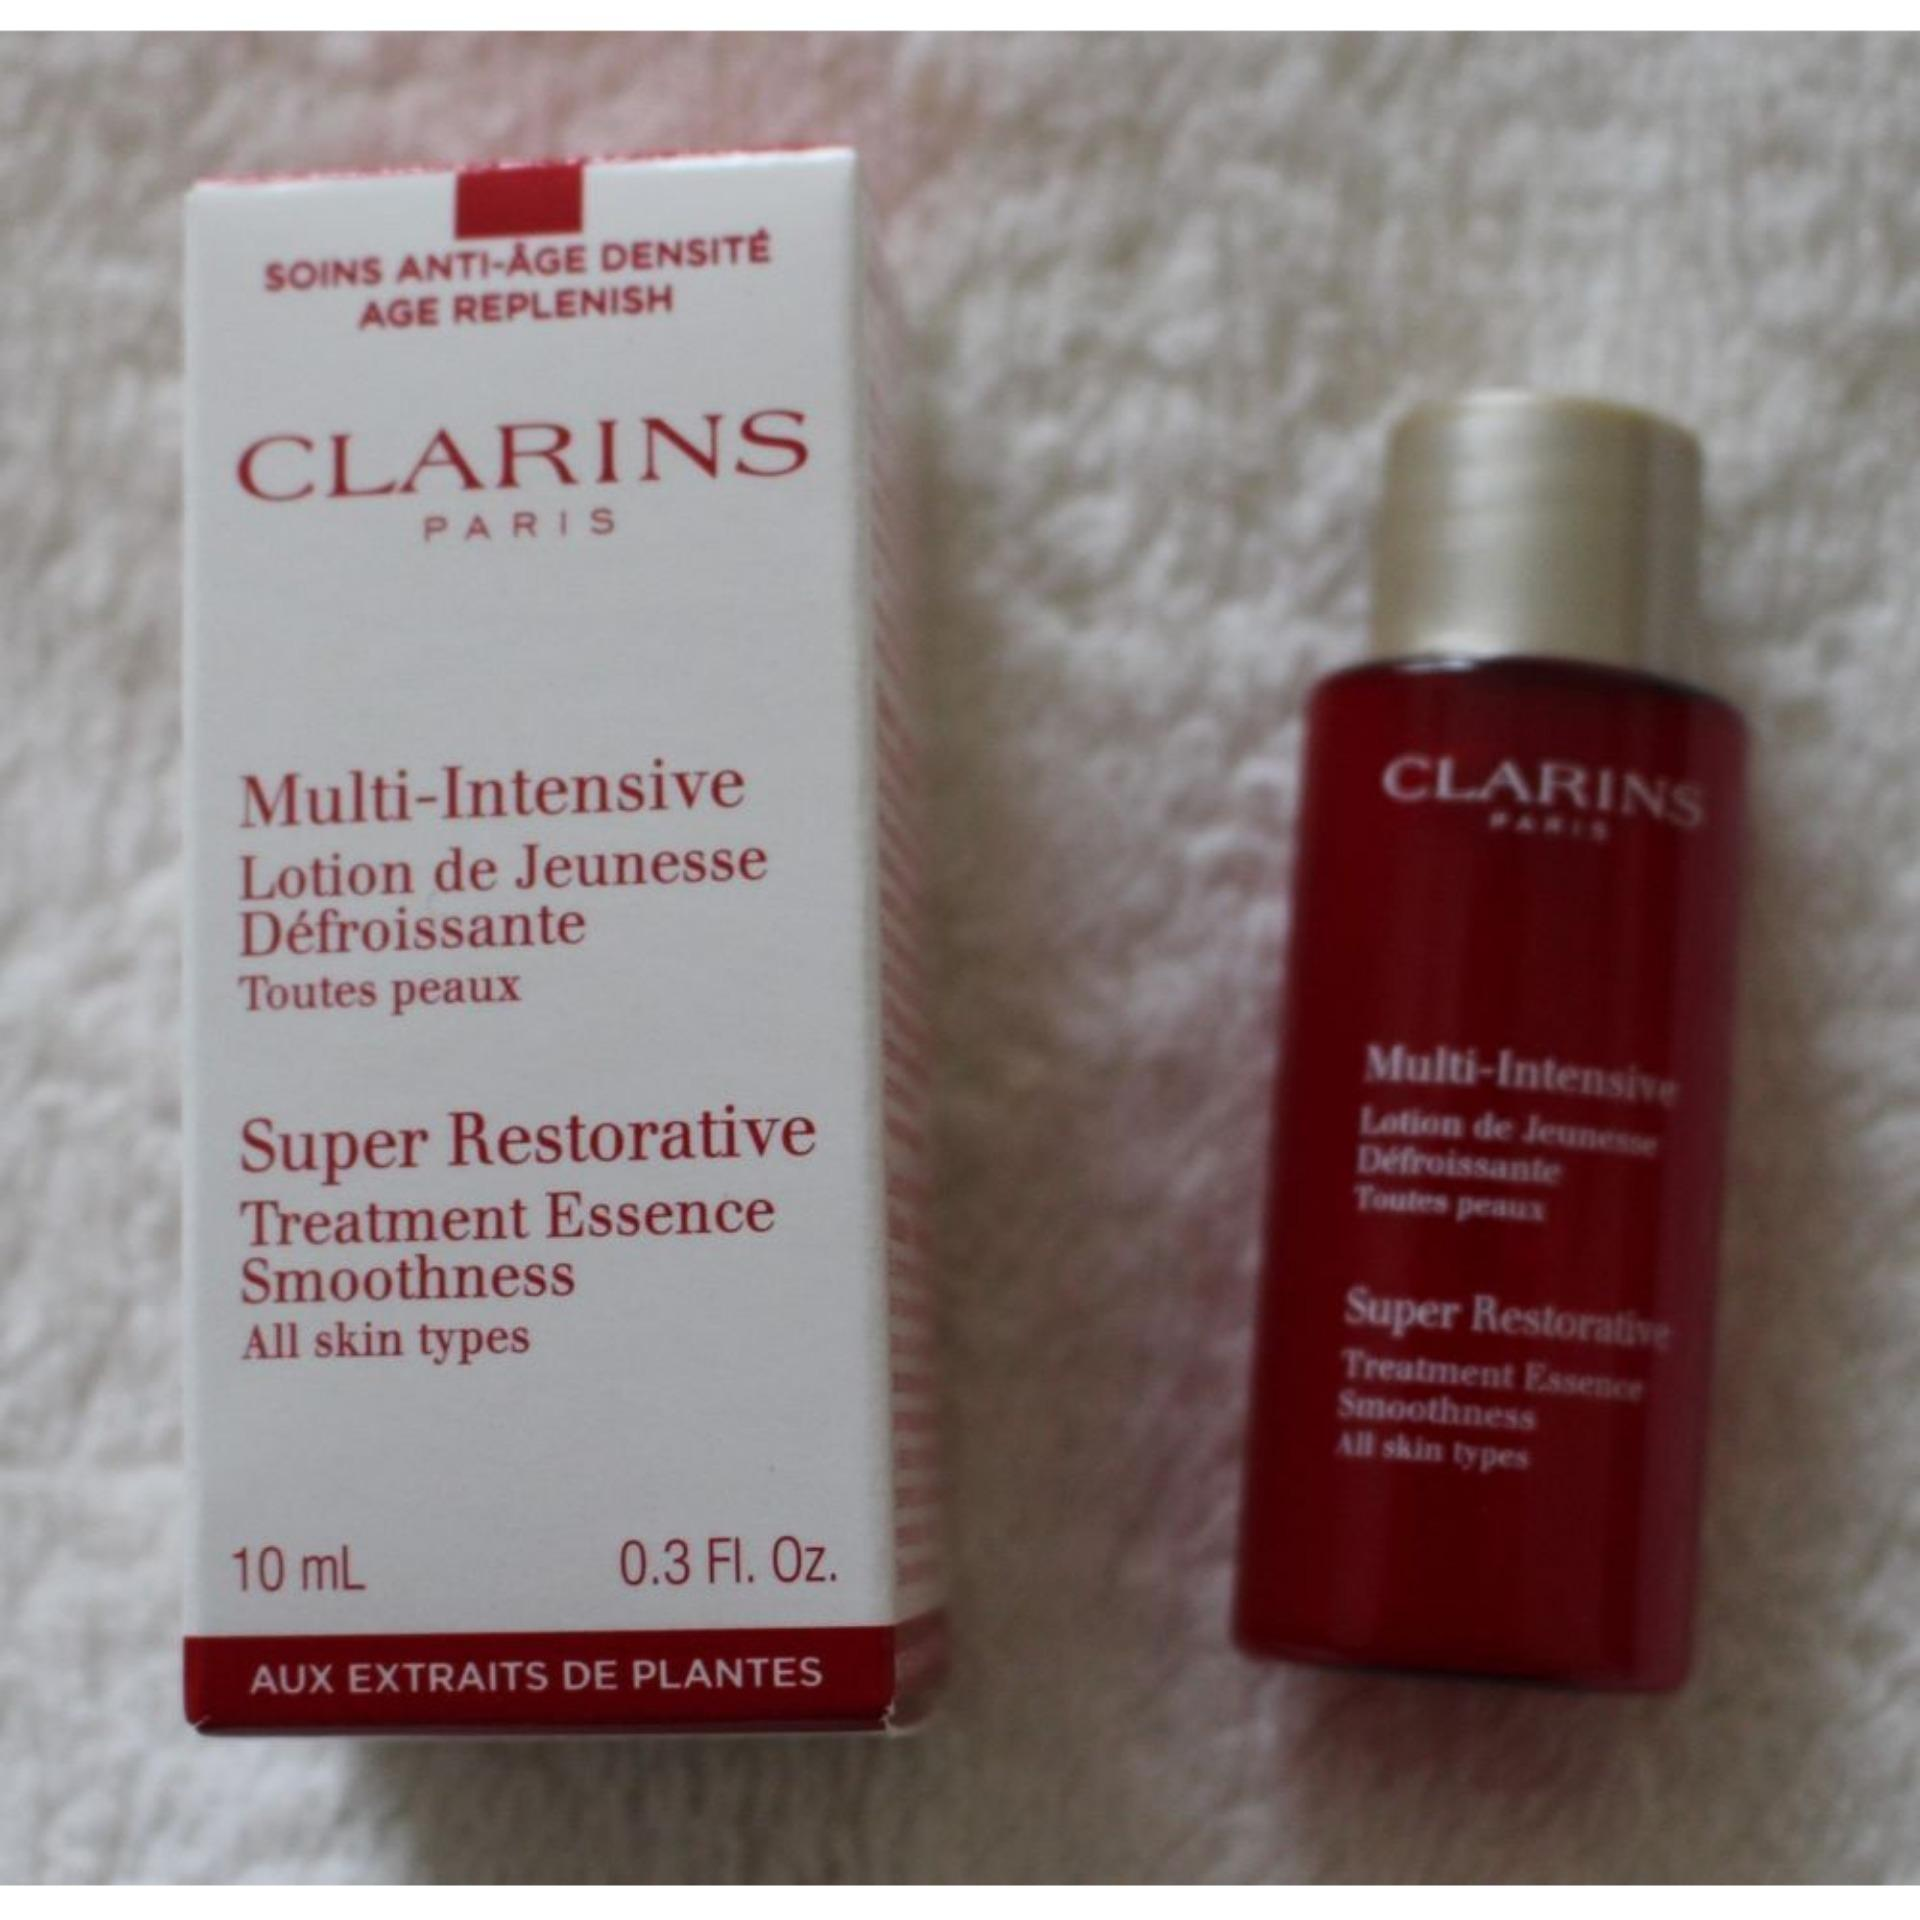 Super Restorative Treatment Essence by Clarins #4